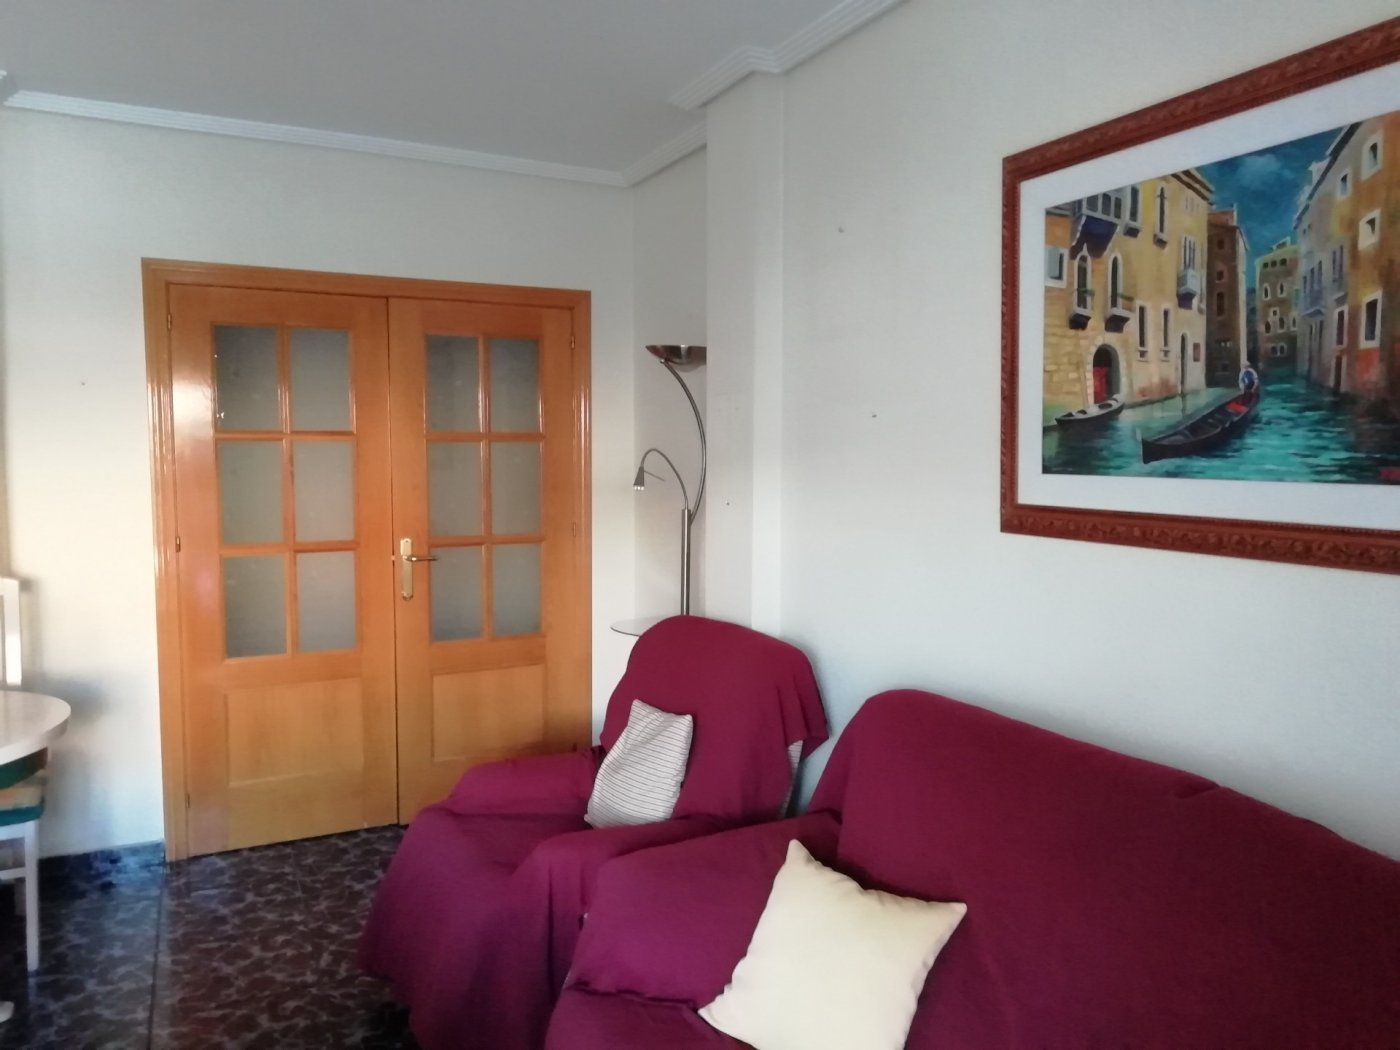 Flat ref 3265-02922 for sale in Puente Tocinos Spain - Quality Homes Costa Cálida